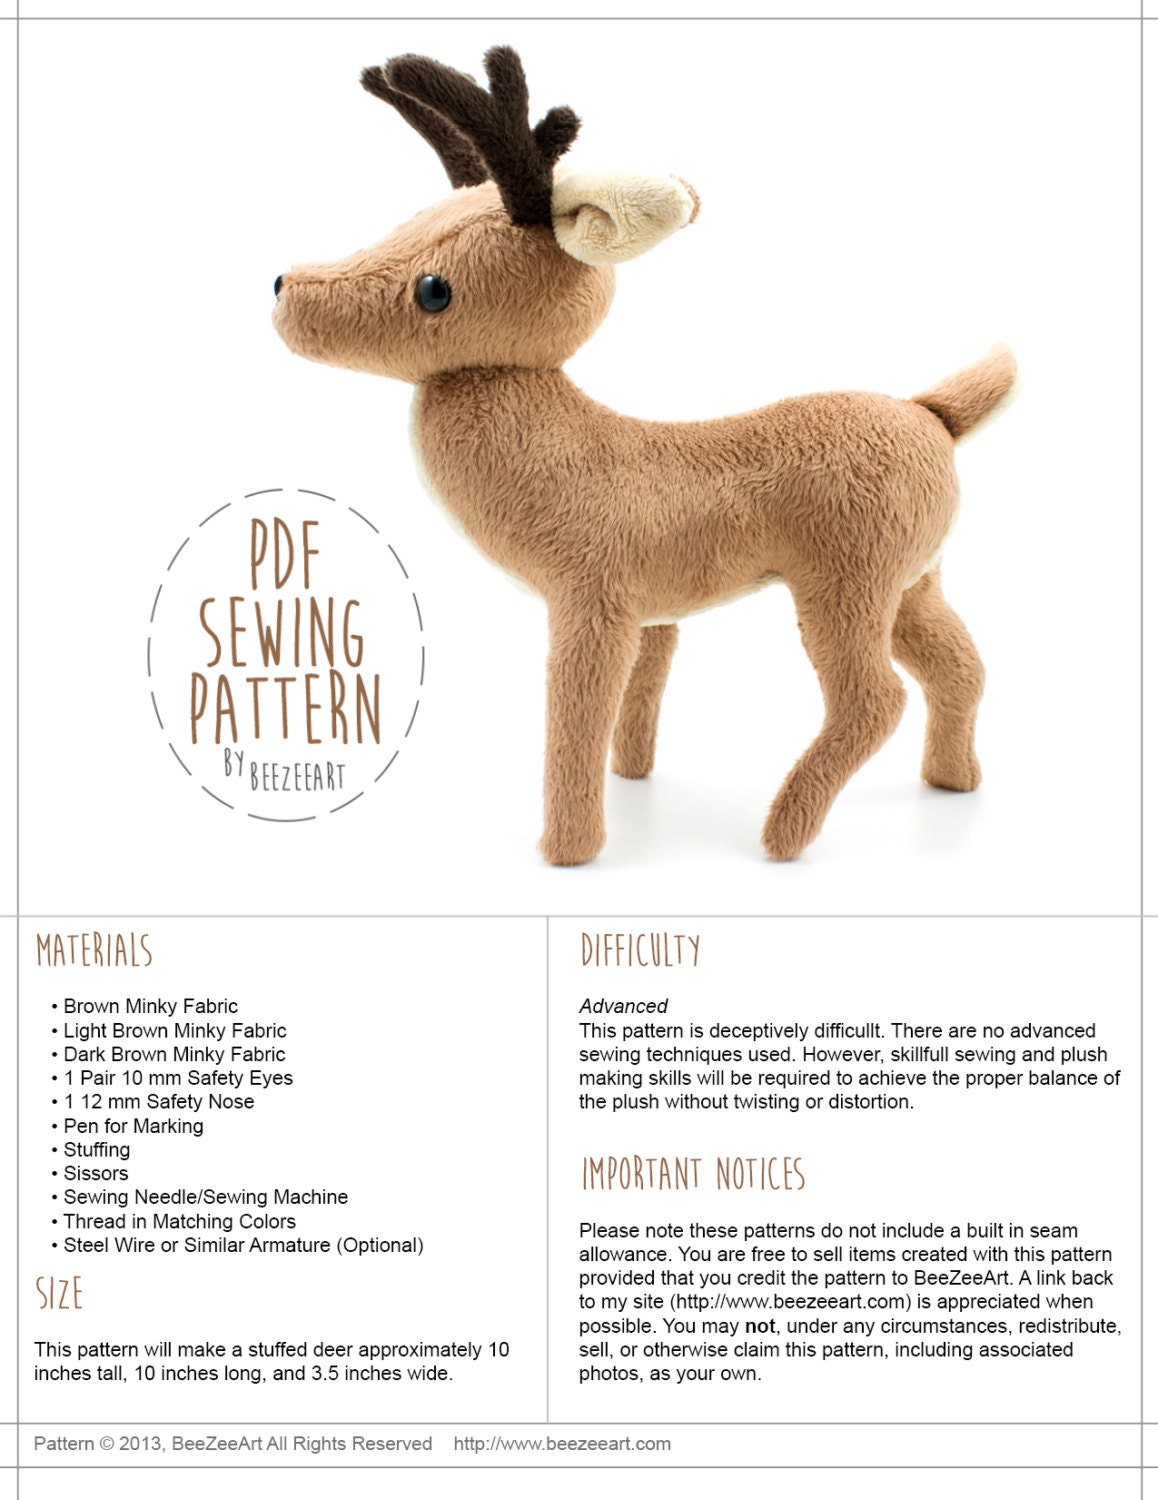 Deer stuffed animal sewing pattern pdf pattern diy sewing for Sewing templates for stuffed animals